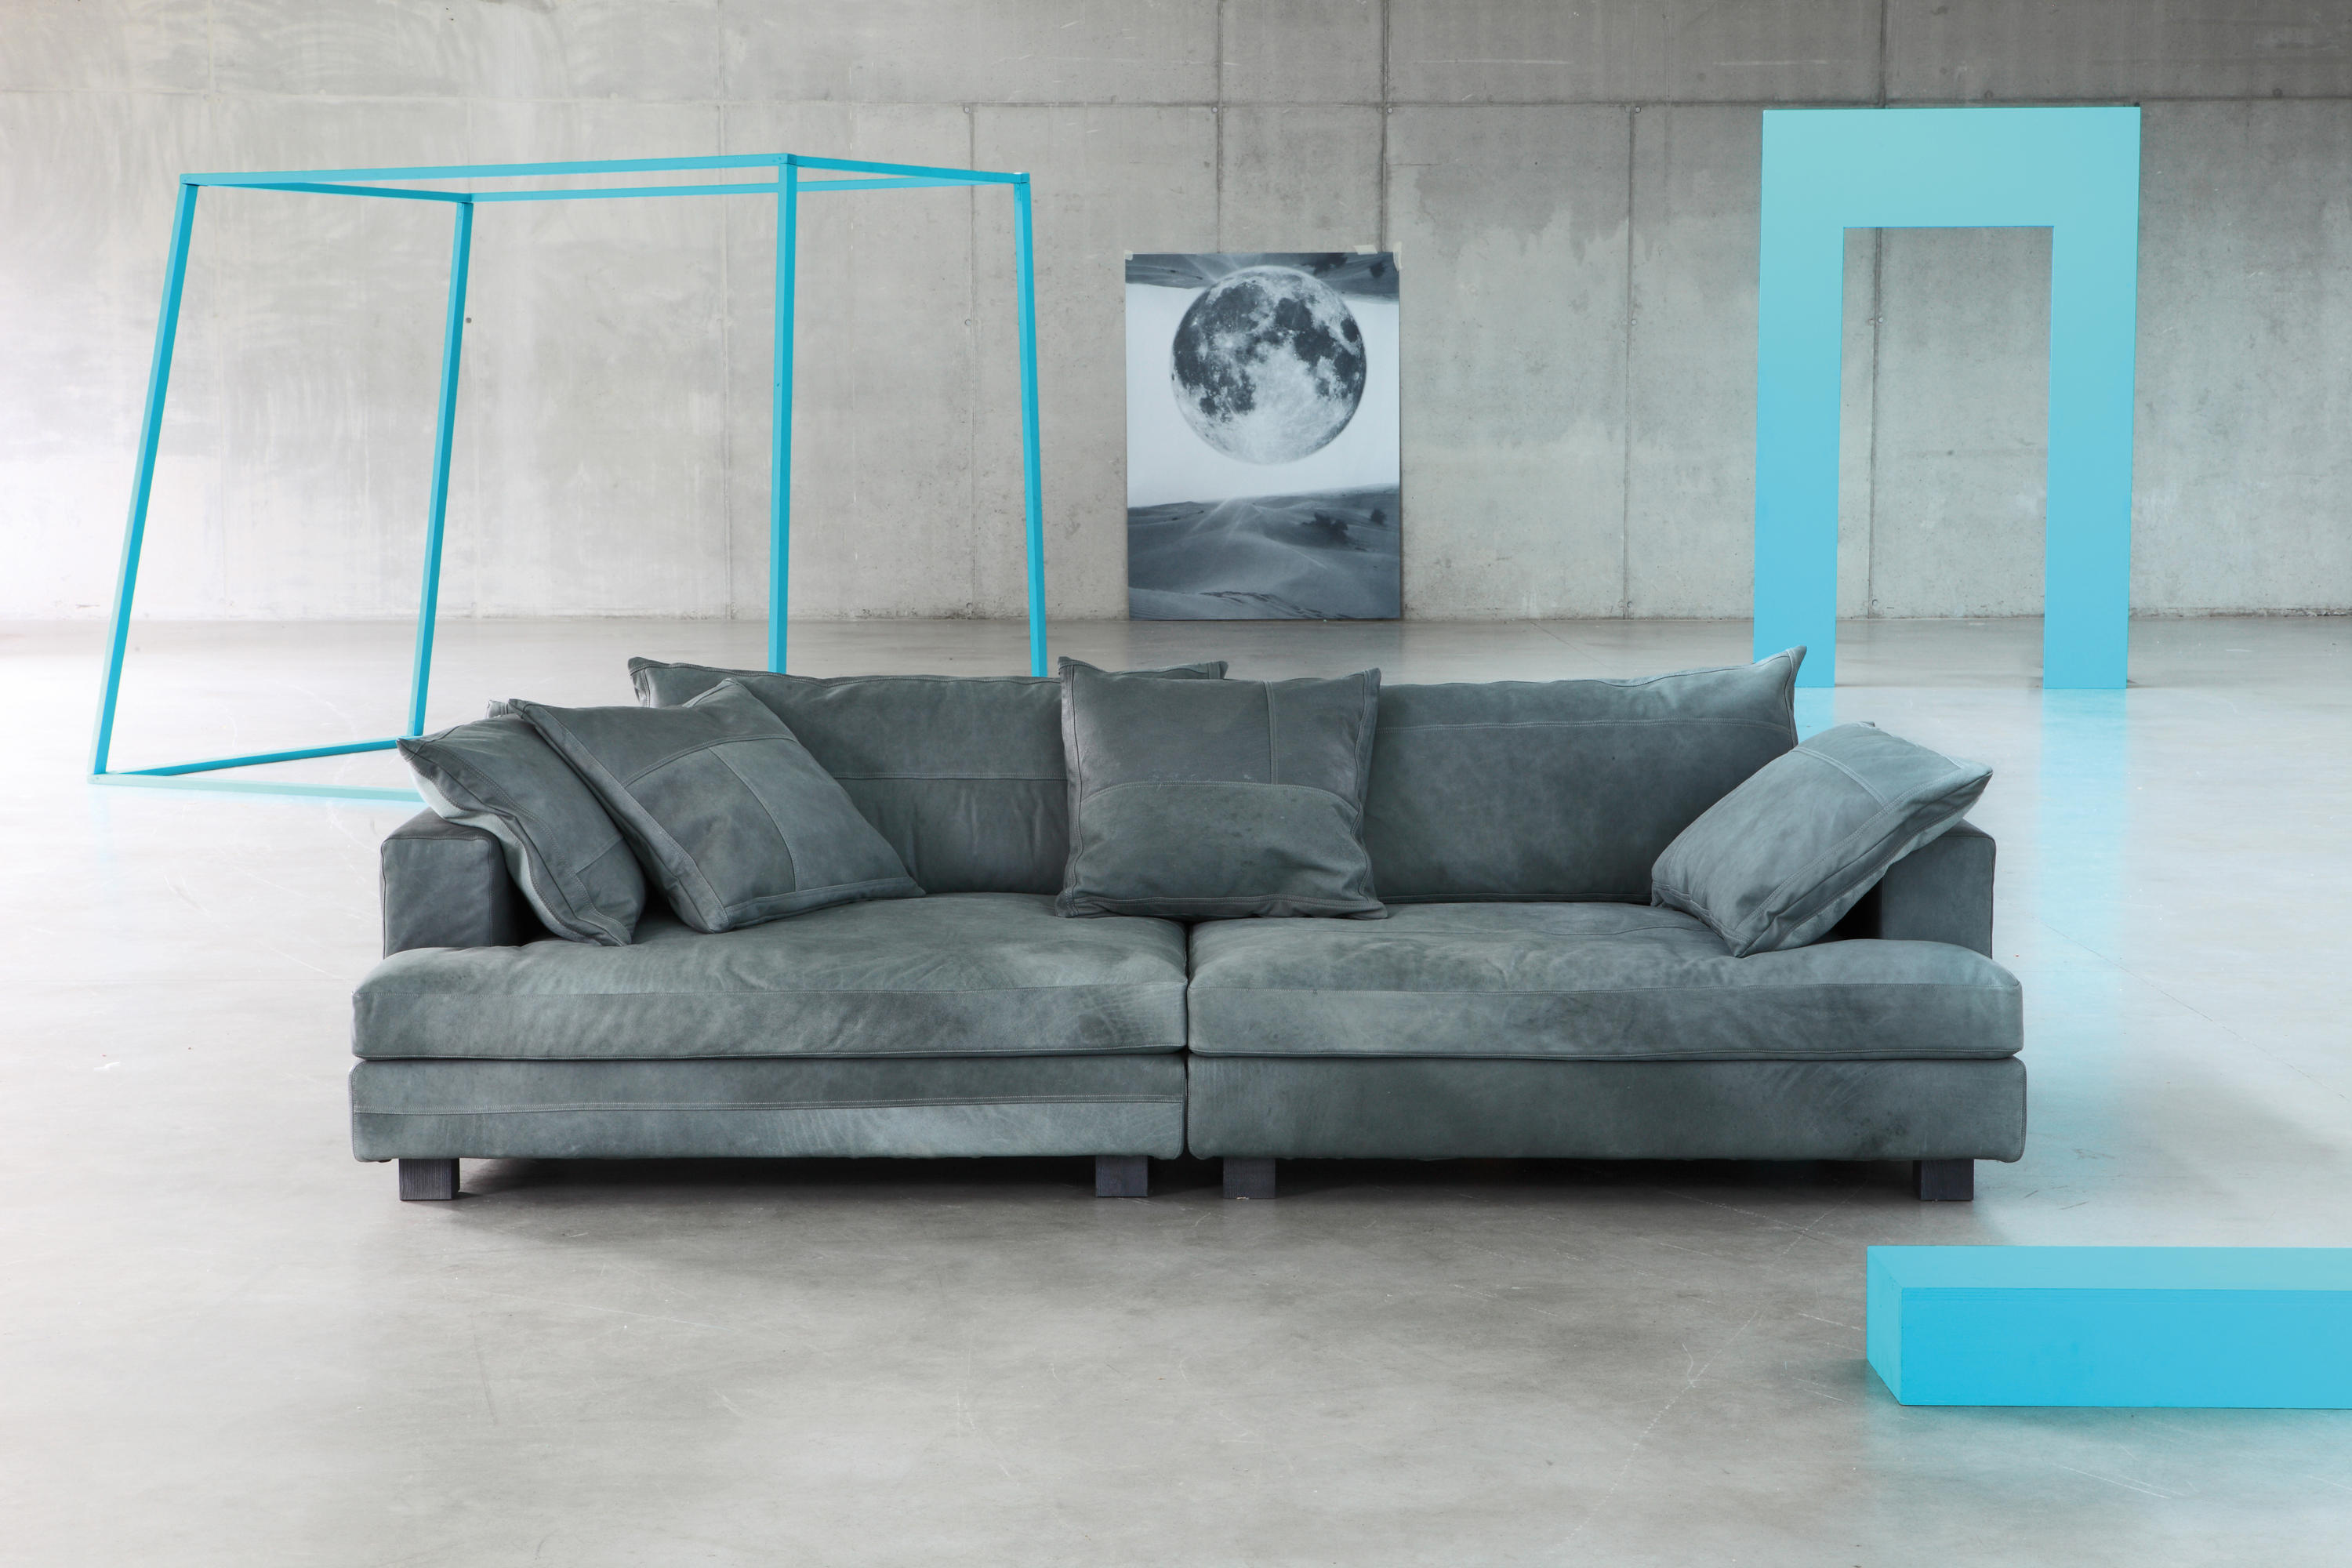 Cloud atlas sofas from diesel with moroso architonic - Divano diesel moroso ...